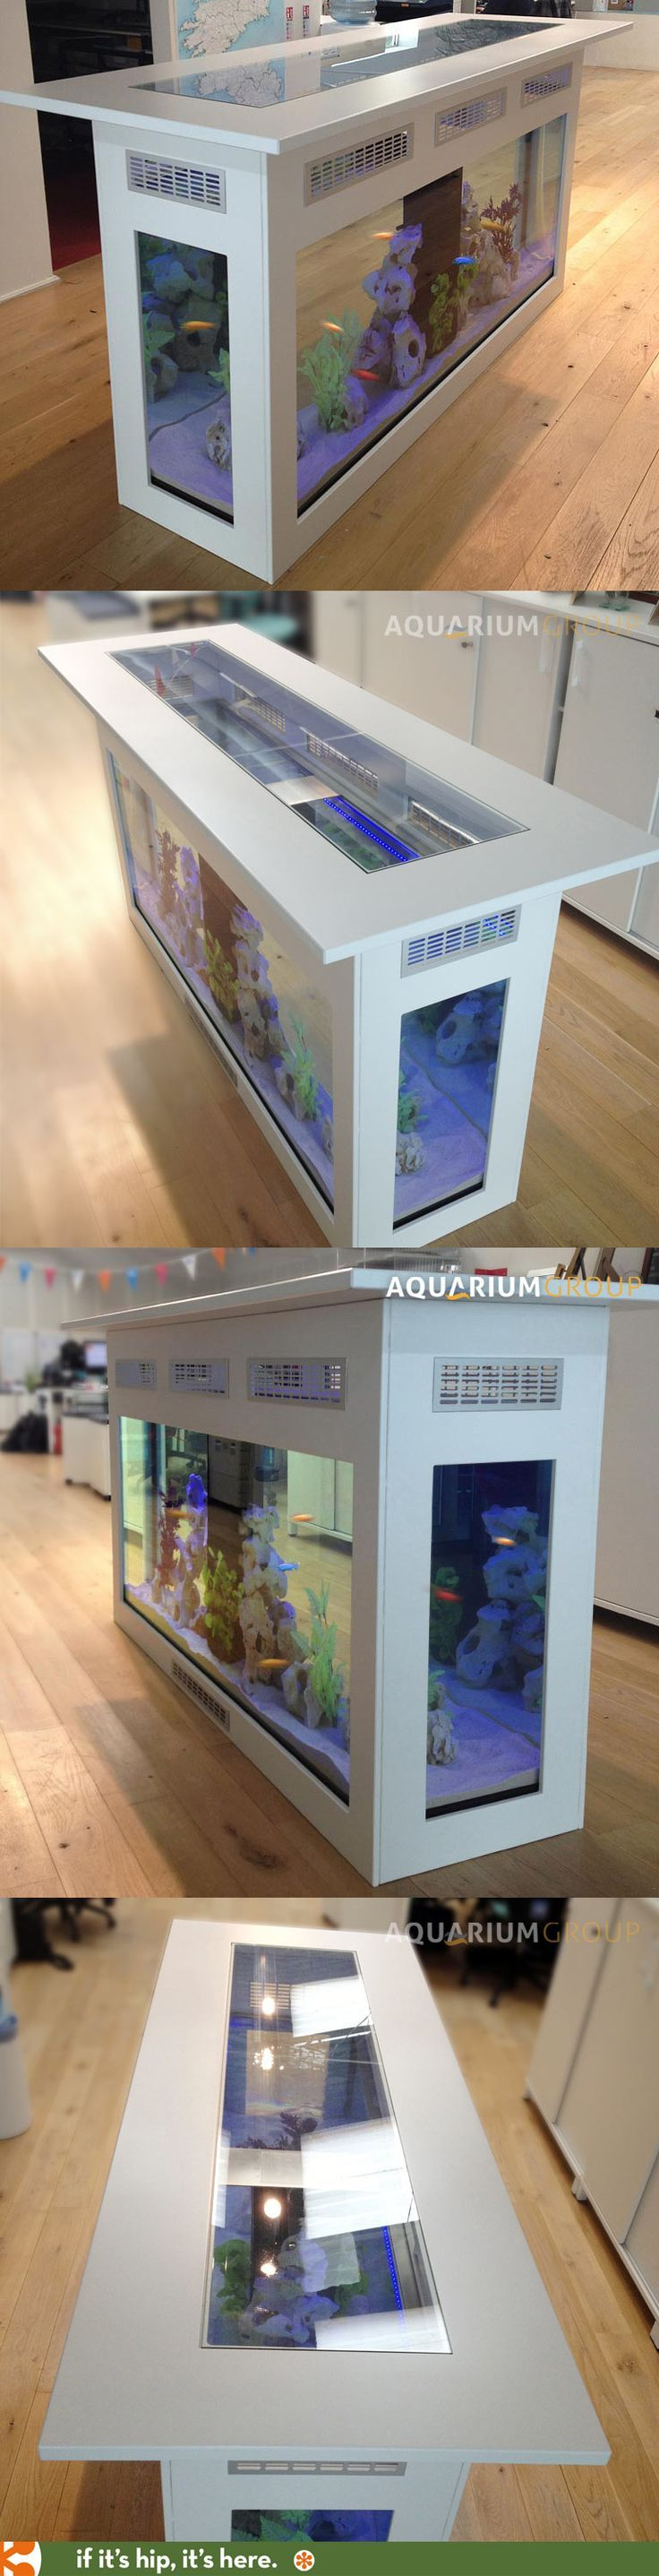 Aquarium Interior Design Ideas https://www.youtube.com/playlist?list=PLl8qTg6_ZvjEyKwVMIArpOdW_zT9ltCdl&action_edit=1: